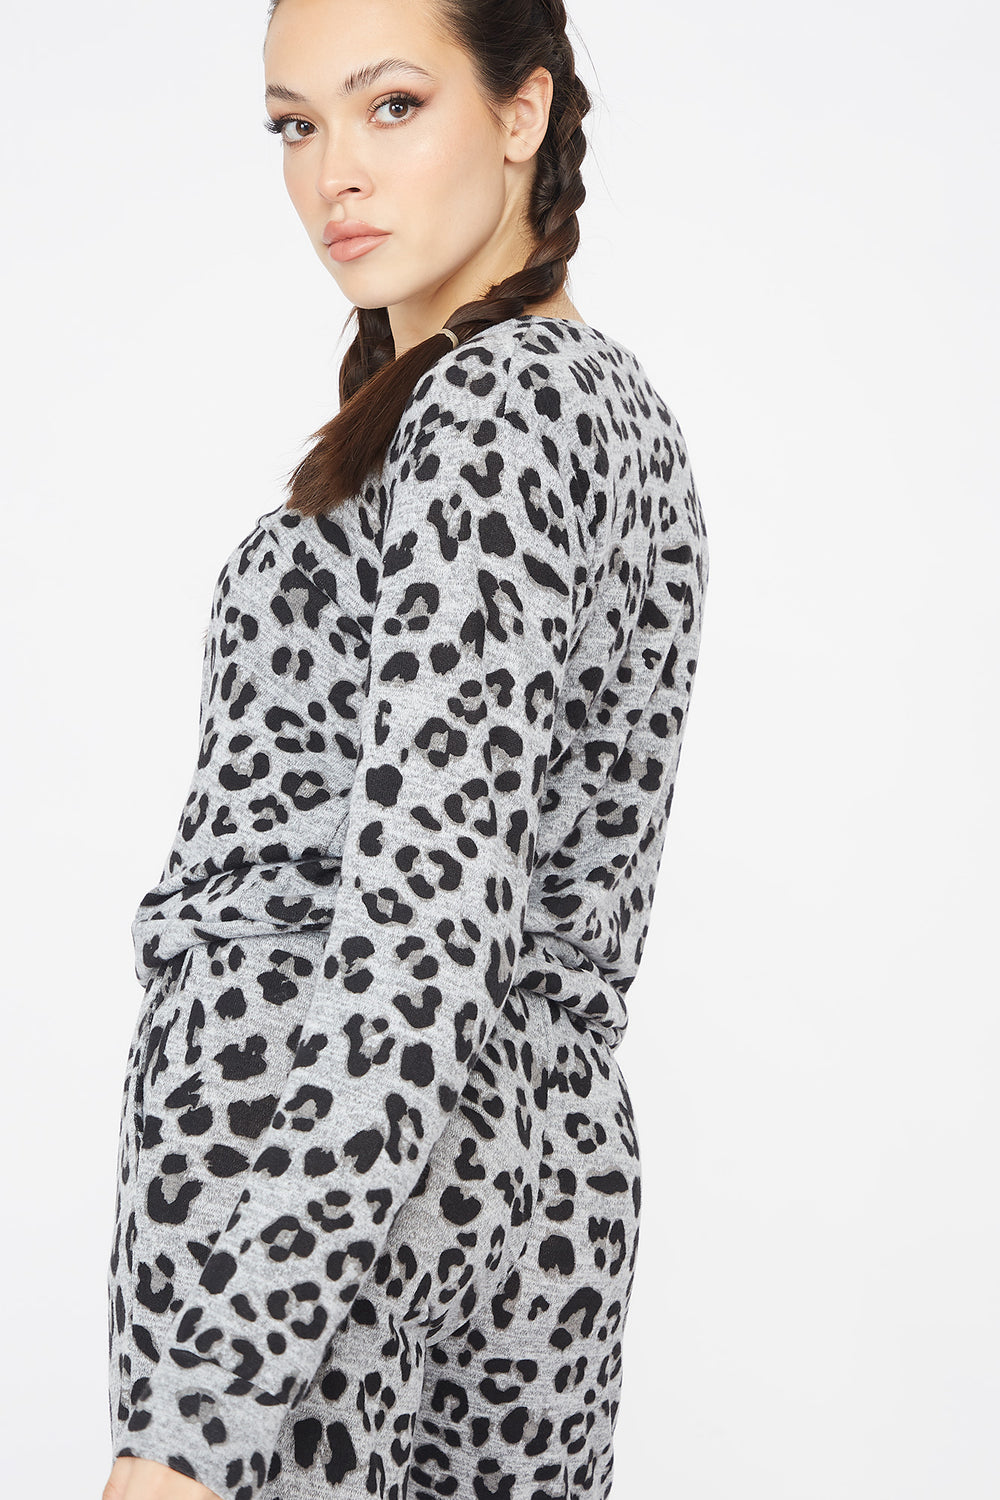 Leopard Printed Criss-Cross Hem Boyfriend Sweatshirt Black